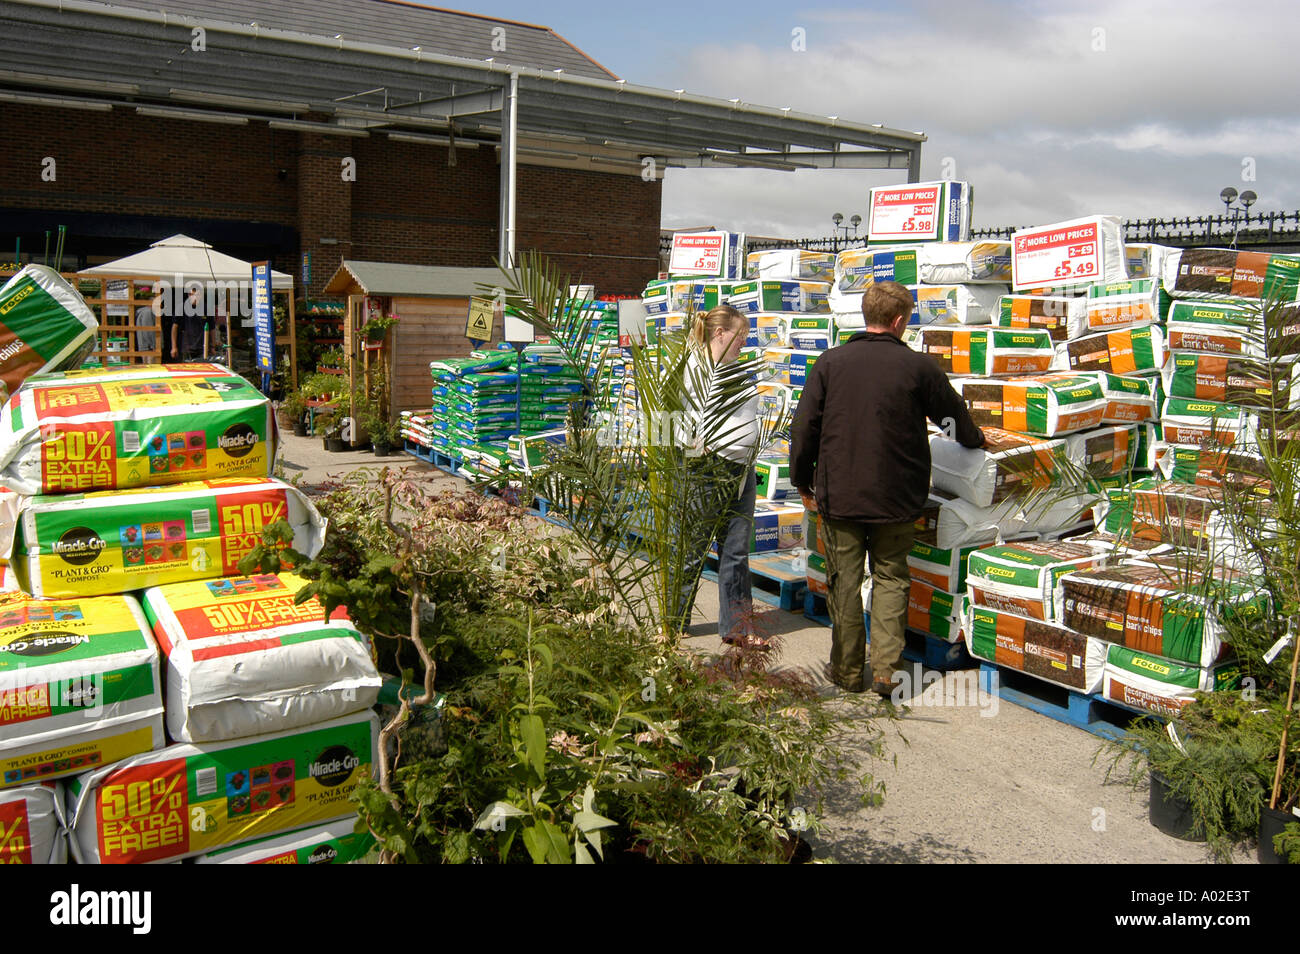 People shopping focus diy do it yourself and garden centre store people shopping focus diy do it yourself and garden centre store parc y llyn aberystwyth garden plants and flowers paraphanalia solutioingenieria Gallery